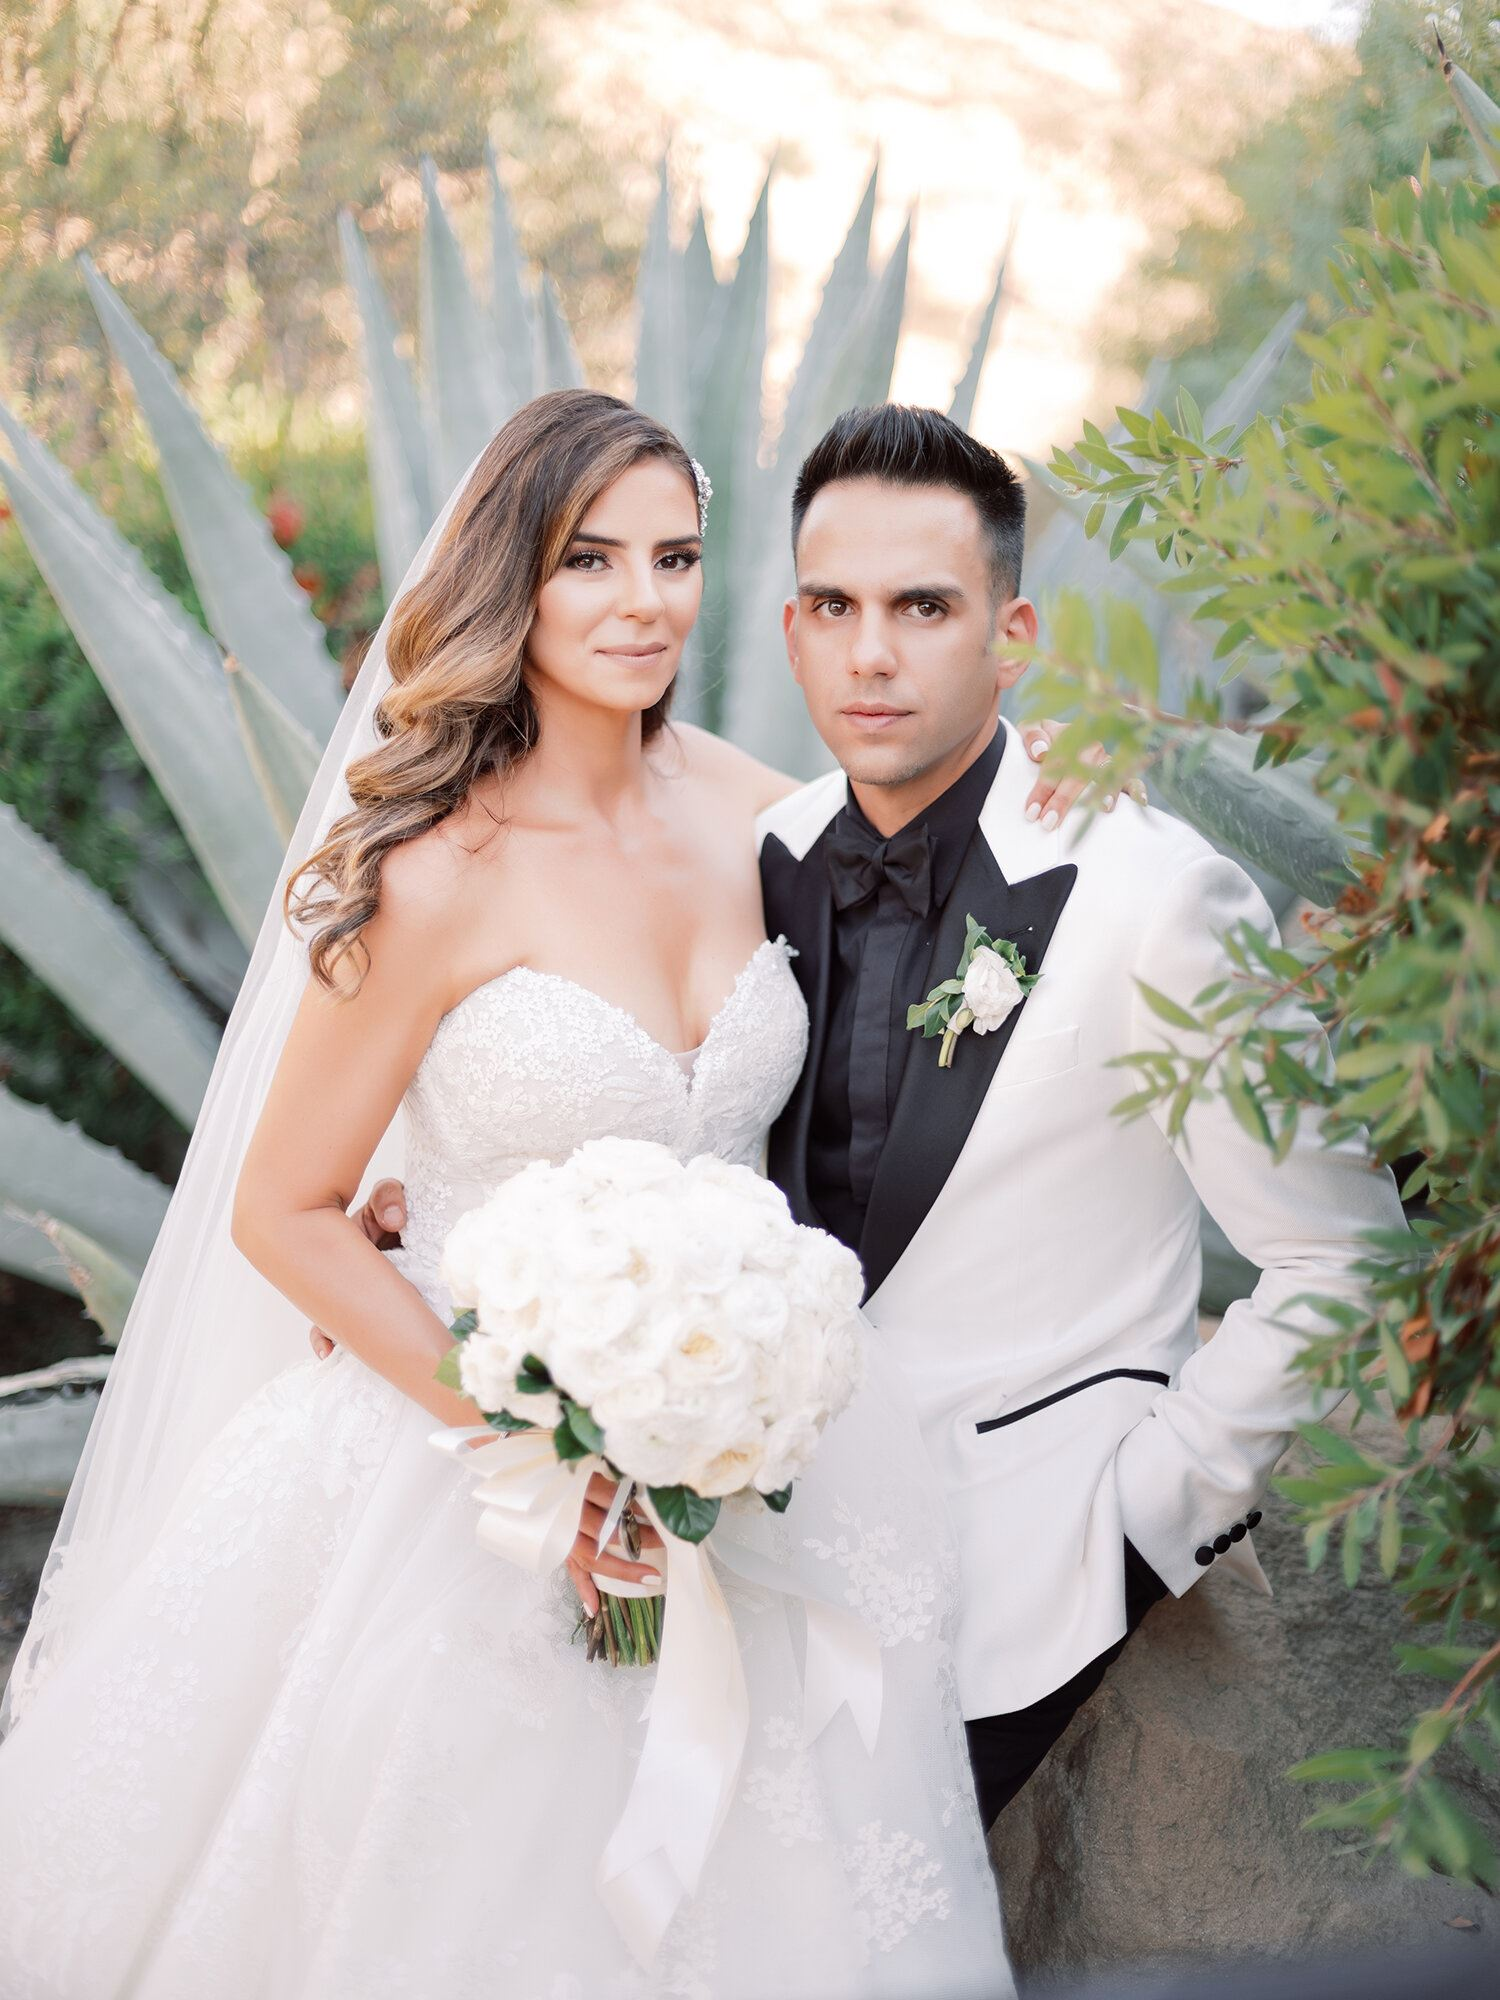 Rita Vineris #Lovellabride Daniella Marries Garen!. Desktop Image